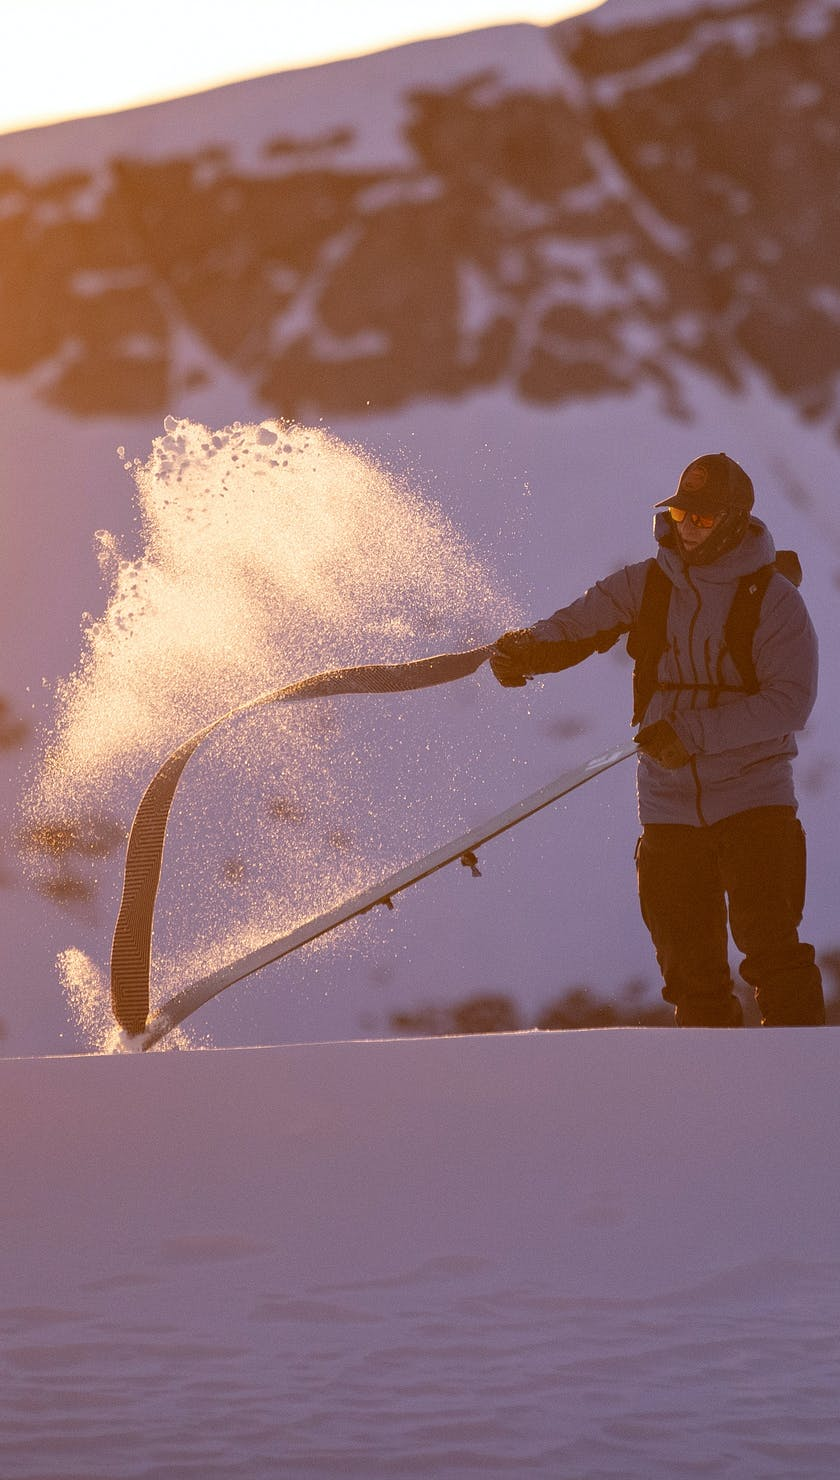 BD Athlete Mike Barney ripping skins in the backcountry